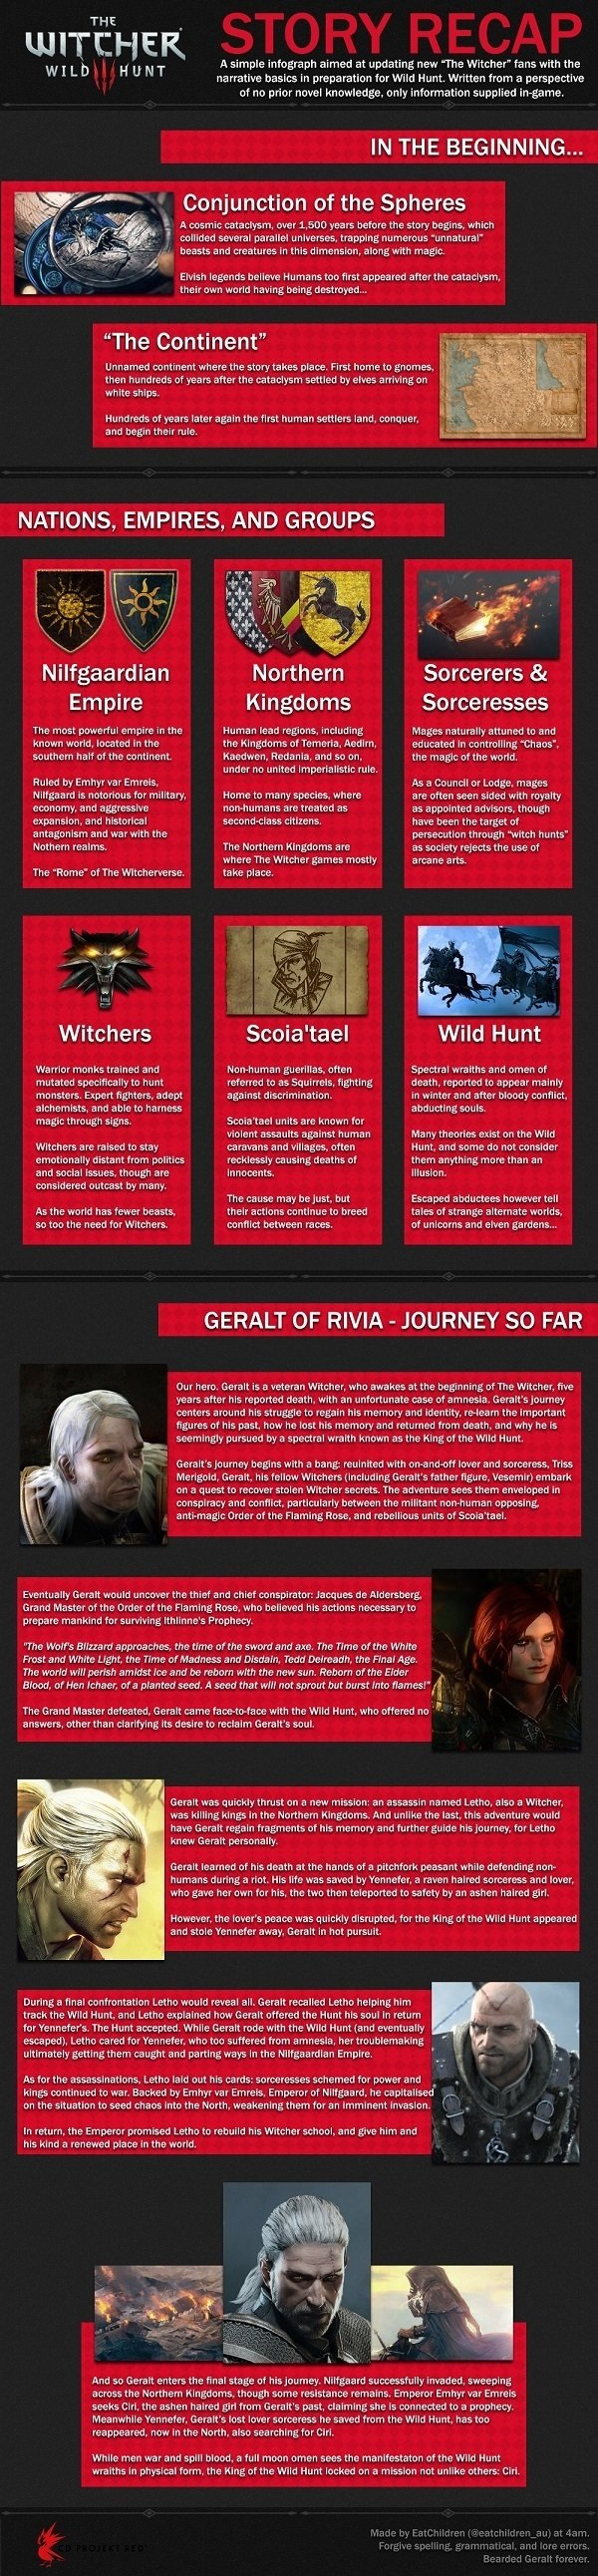 witcherinfographic_small.jpg